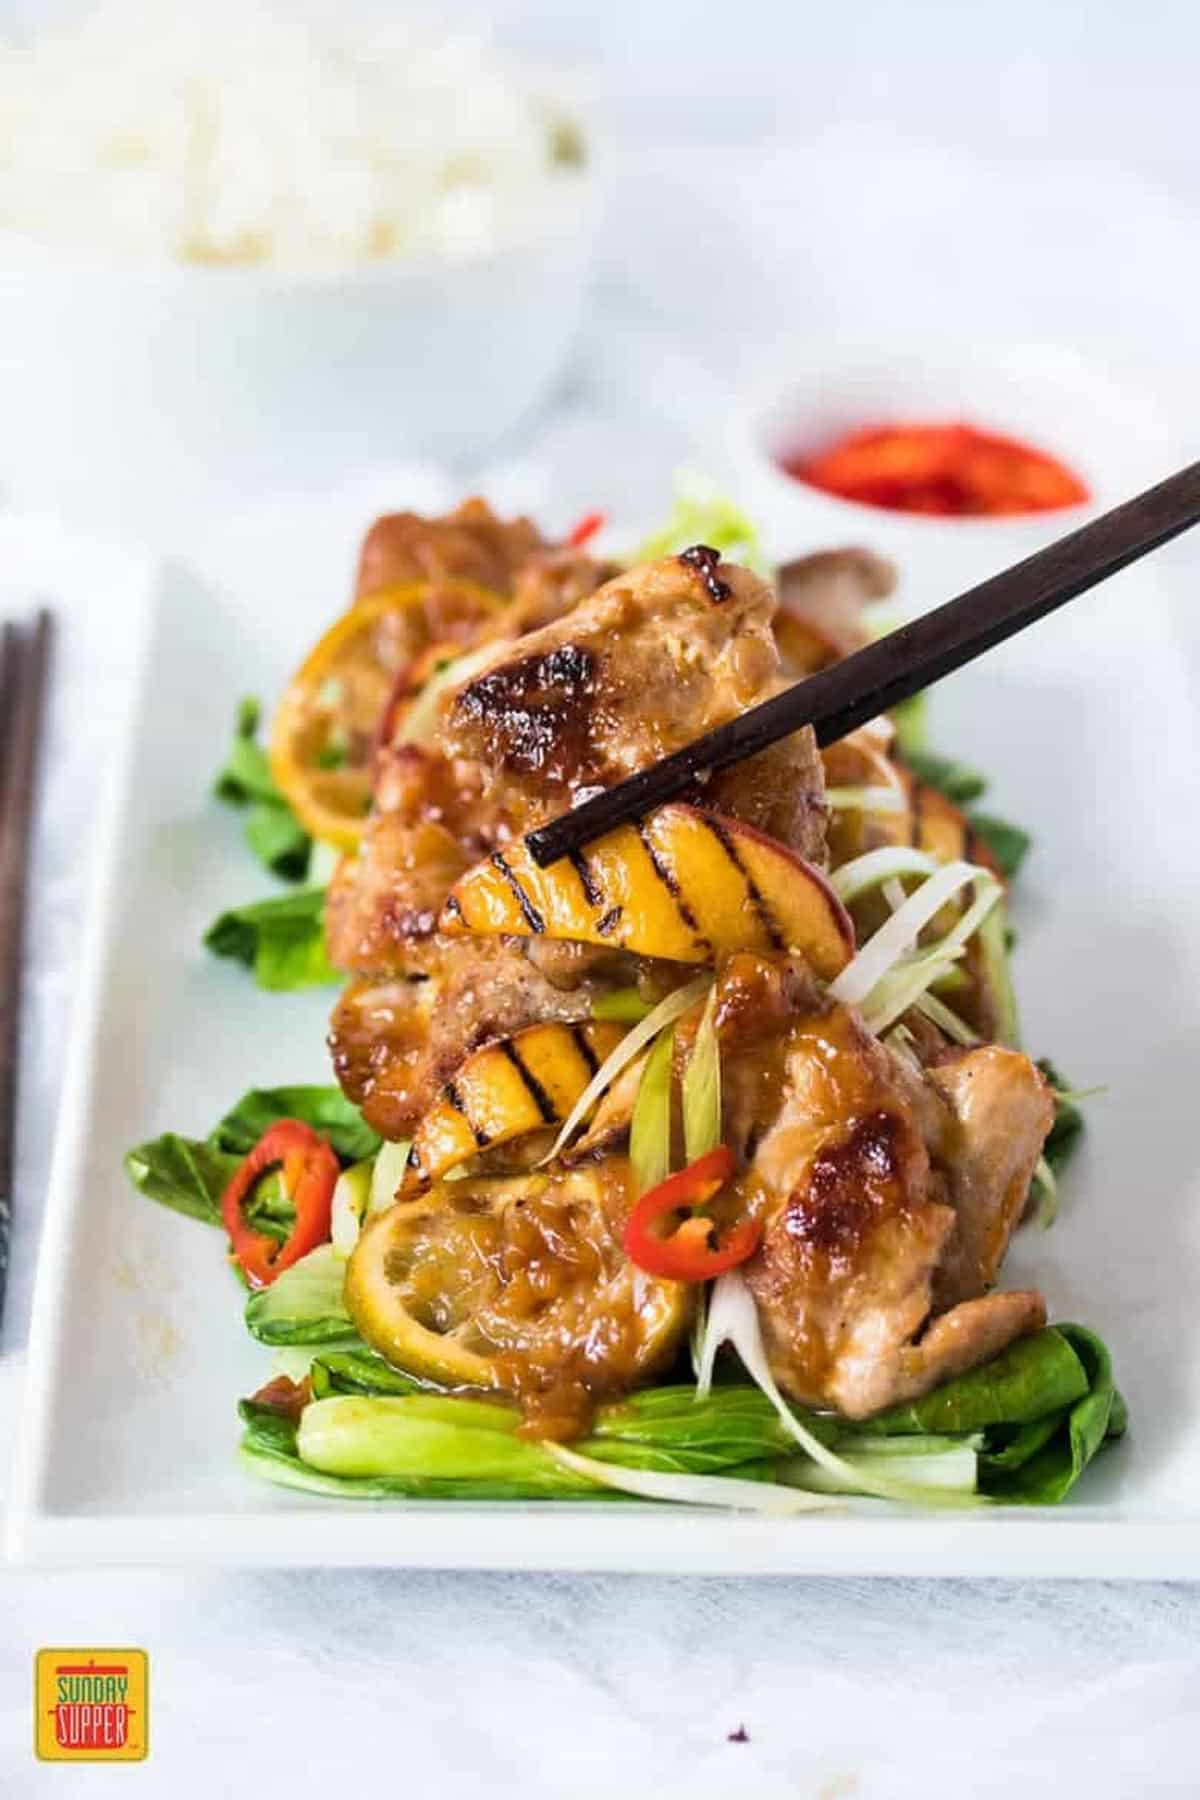 Lifting a piece of peach glaze chicken with a grilled peach slice using chopsticks